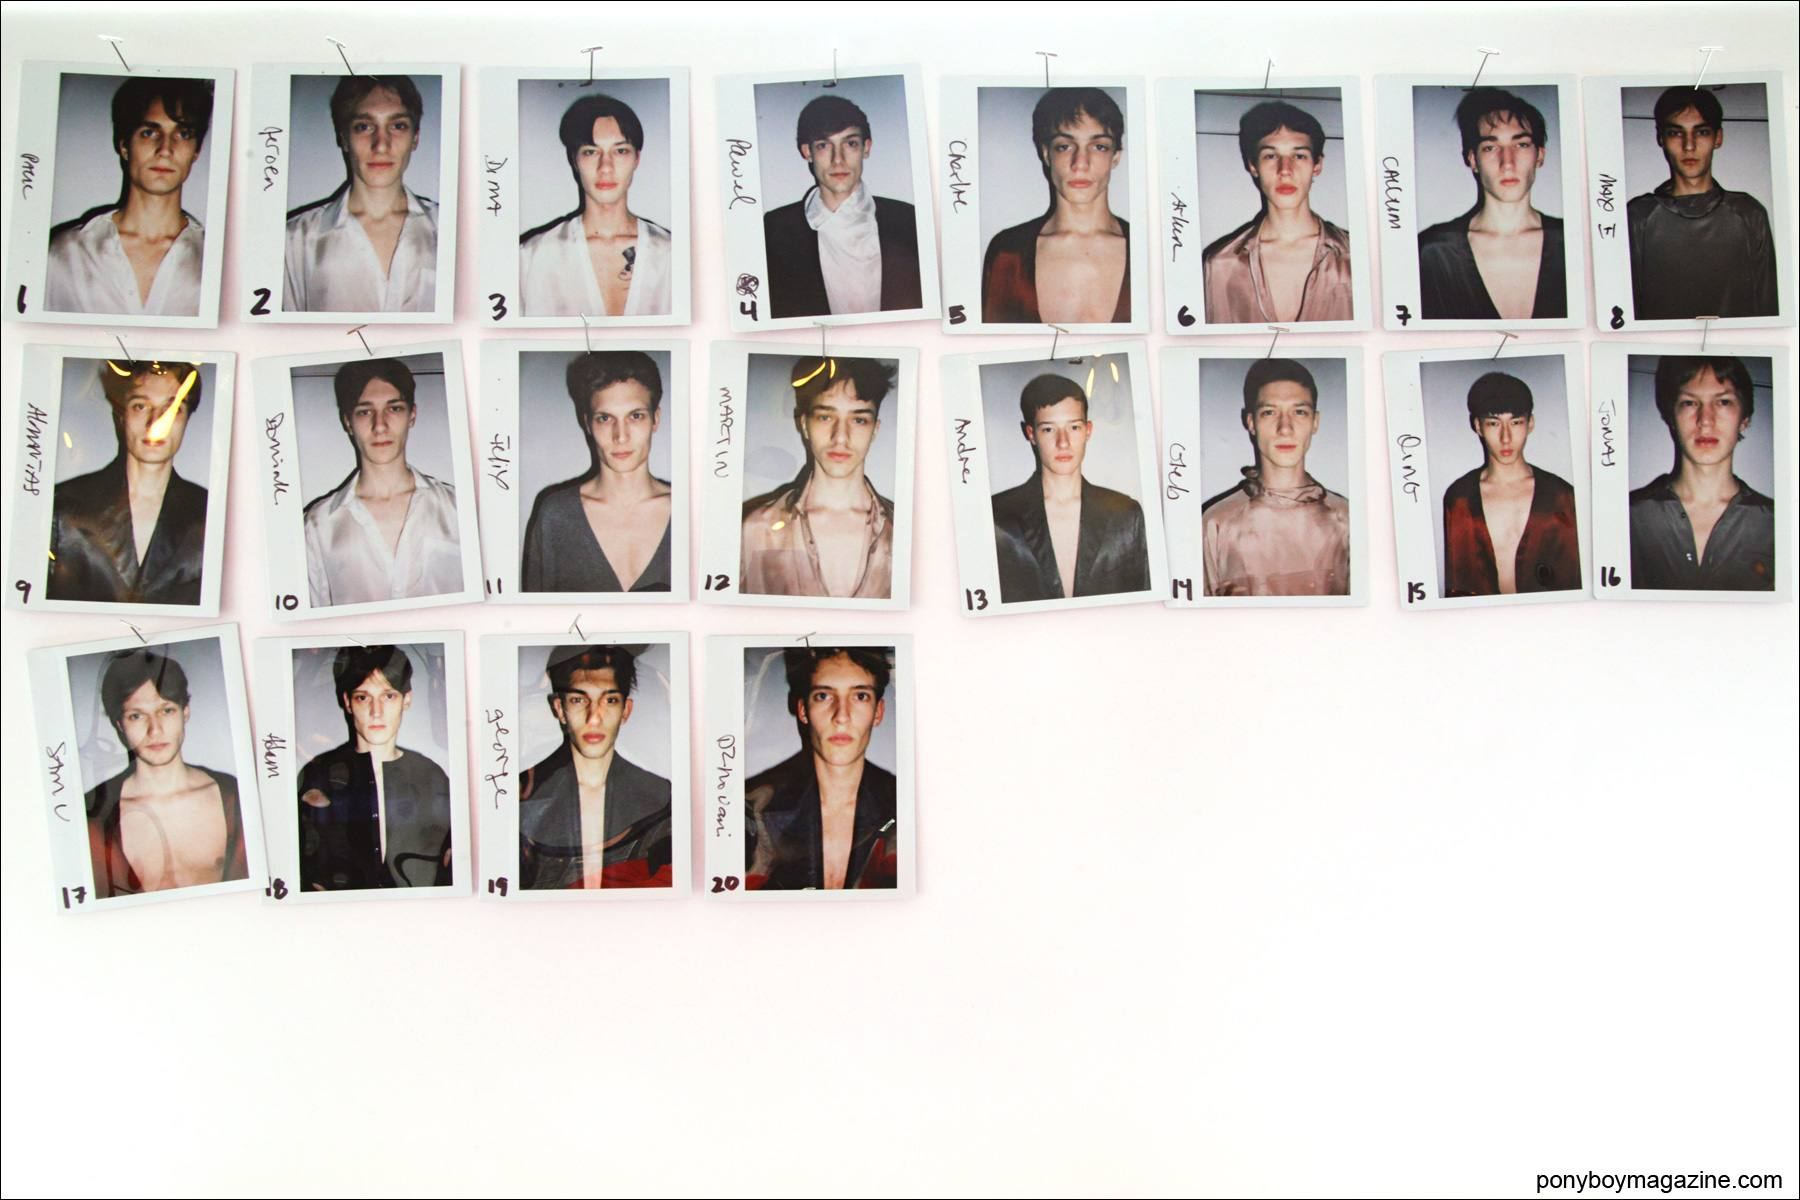 Polaroids of male models from the Duckie Brown F/W collection. Photo by Alexander Thompson for Ponyboy magazine.